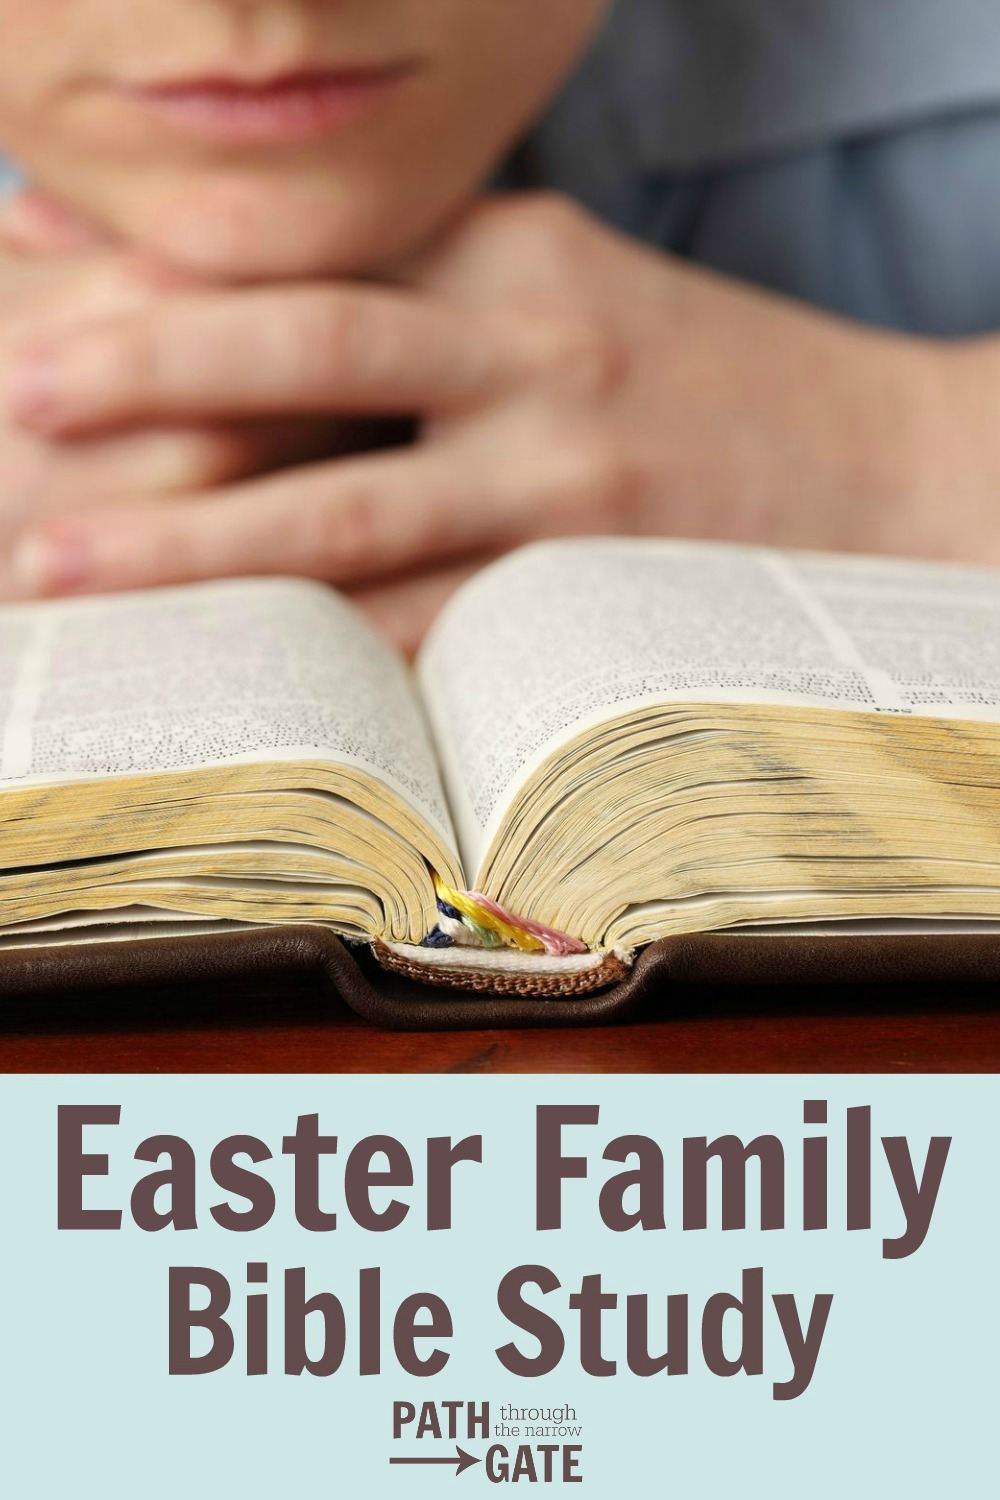 Would you like to take a deeper look at Jesus' death and resurrection with your family, but don't know where to start? Then this free 15 lesson Family Easter Bible Study is for you!